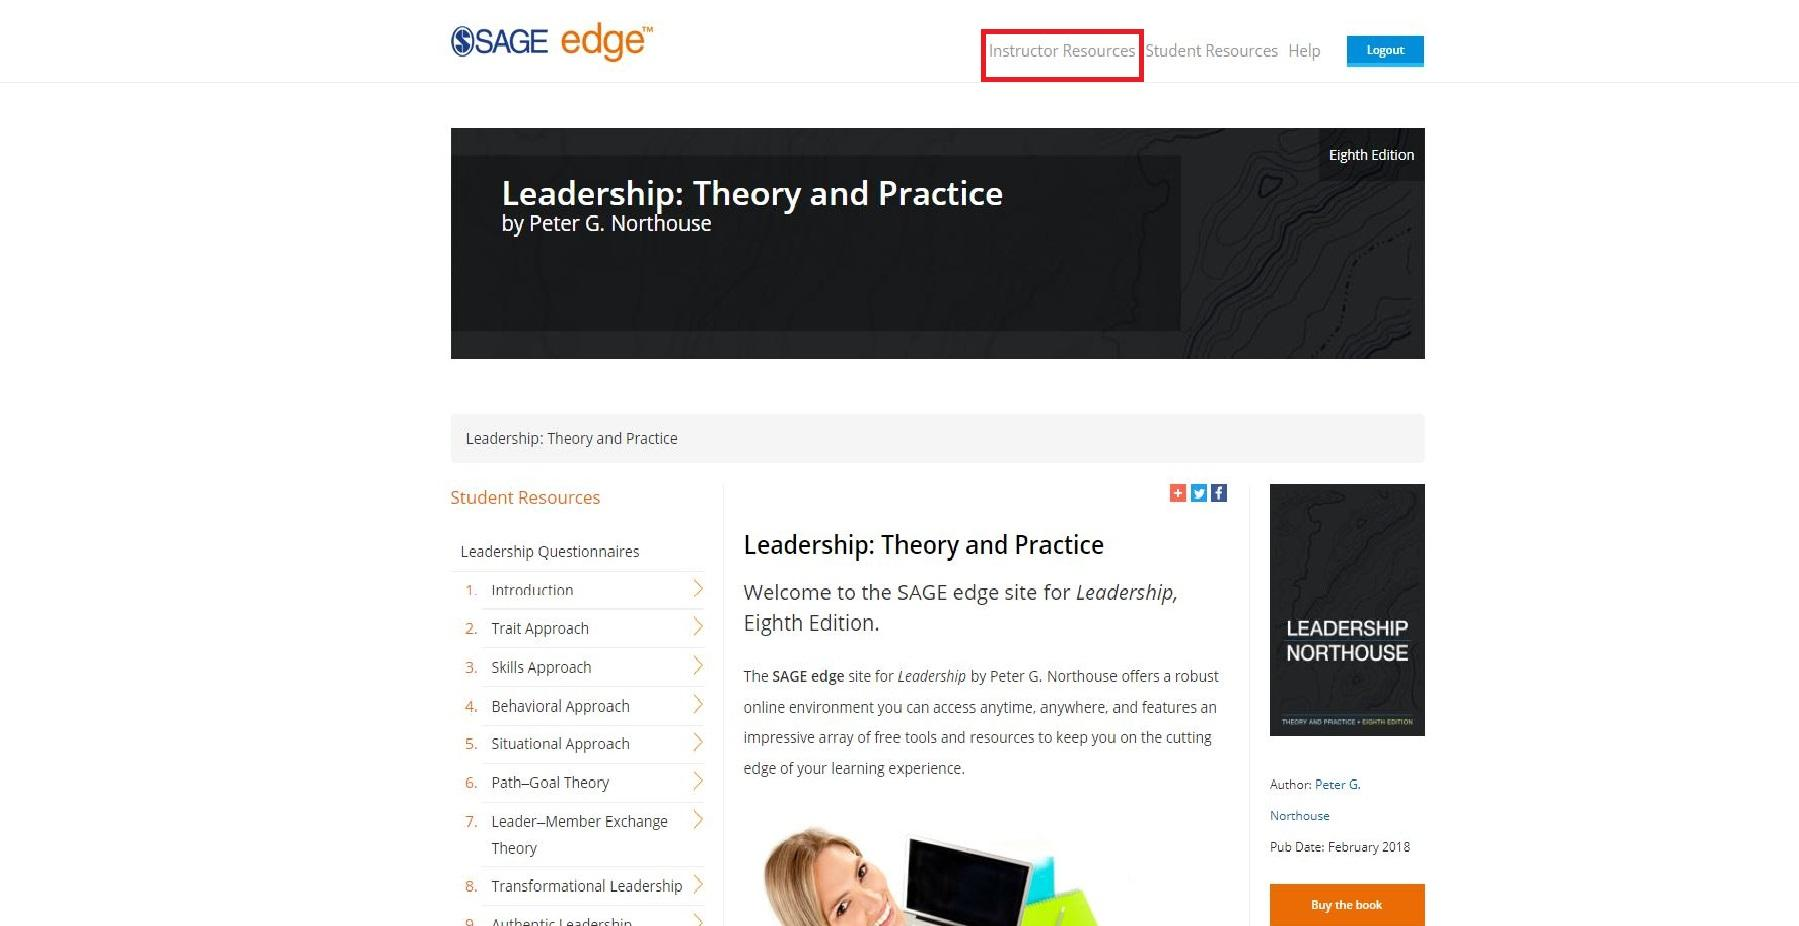 Access Instructor Resources